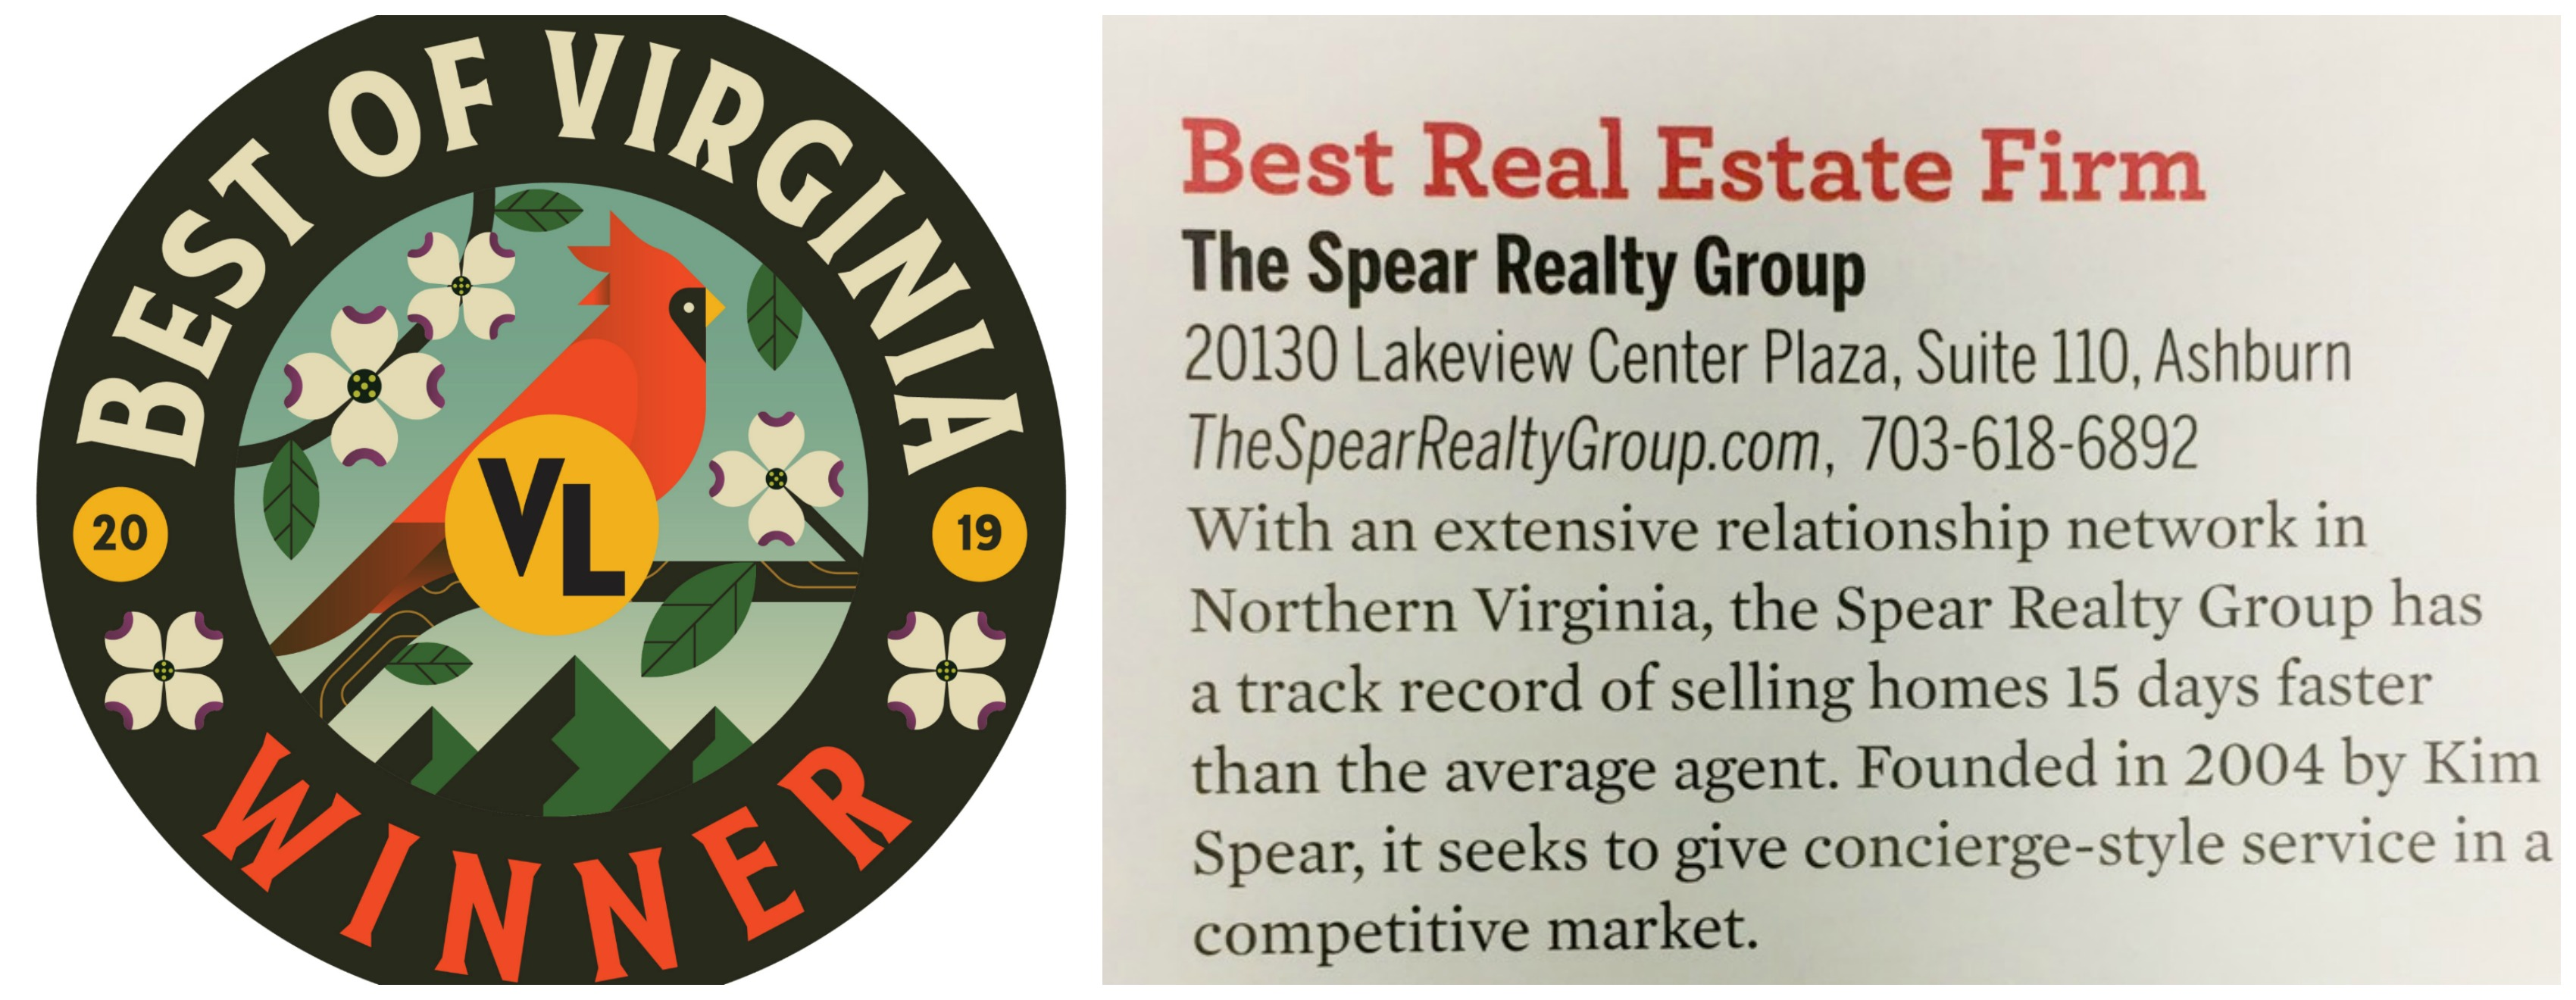 The Spear Realty Group Named Best Realtor in Northern Virginia